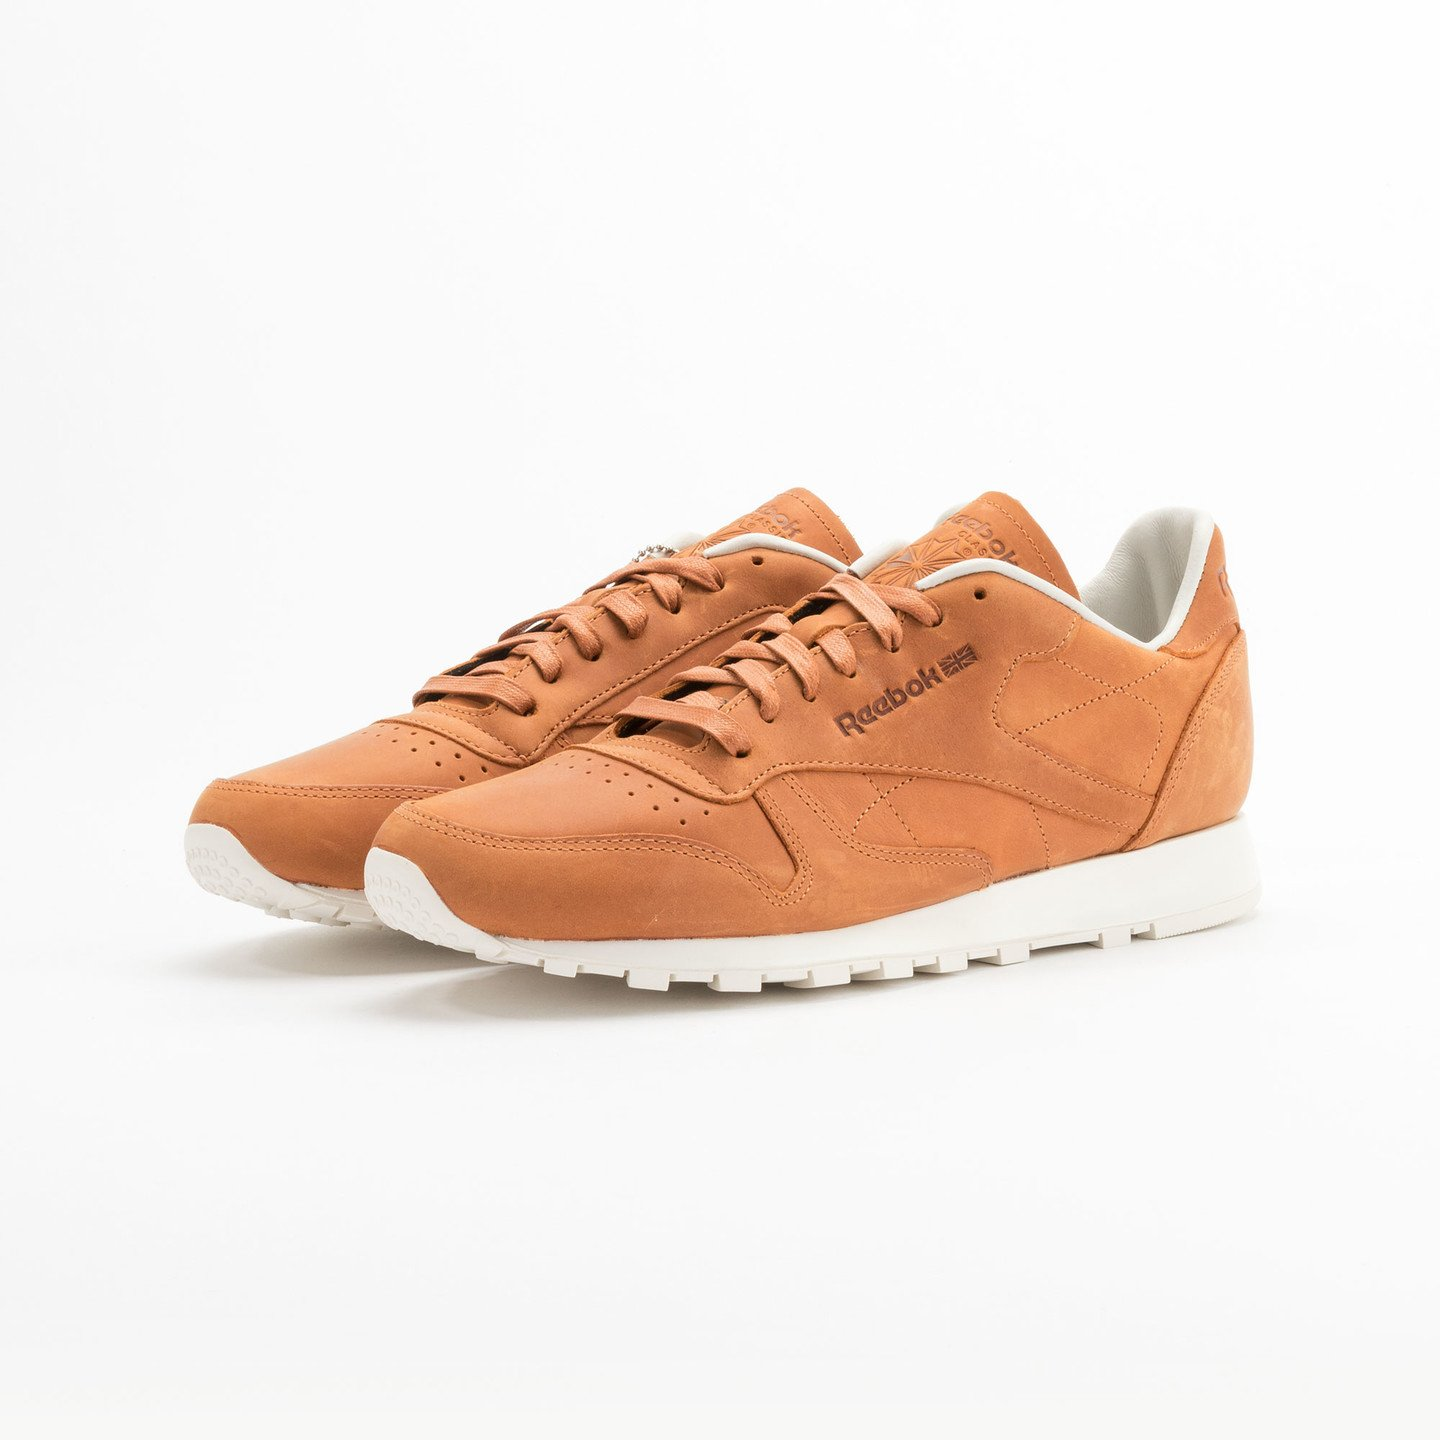 Reebok Classic Leather Lux PW Rusty / Beige / Chalk V68686-44.5